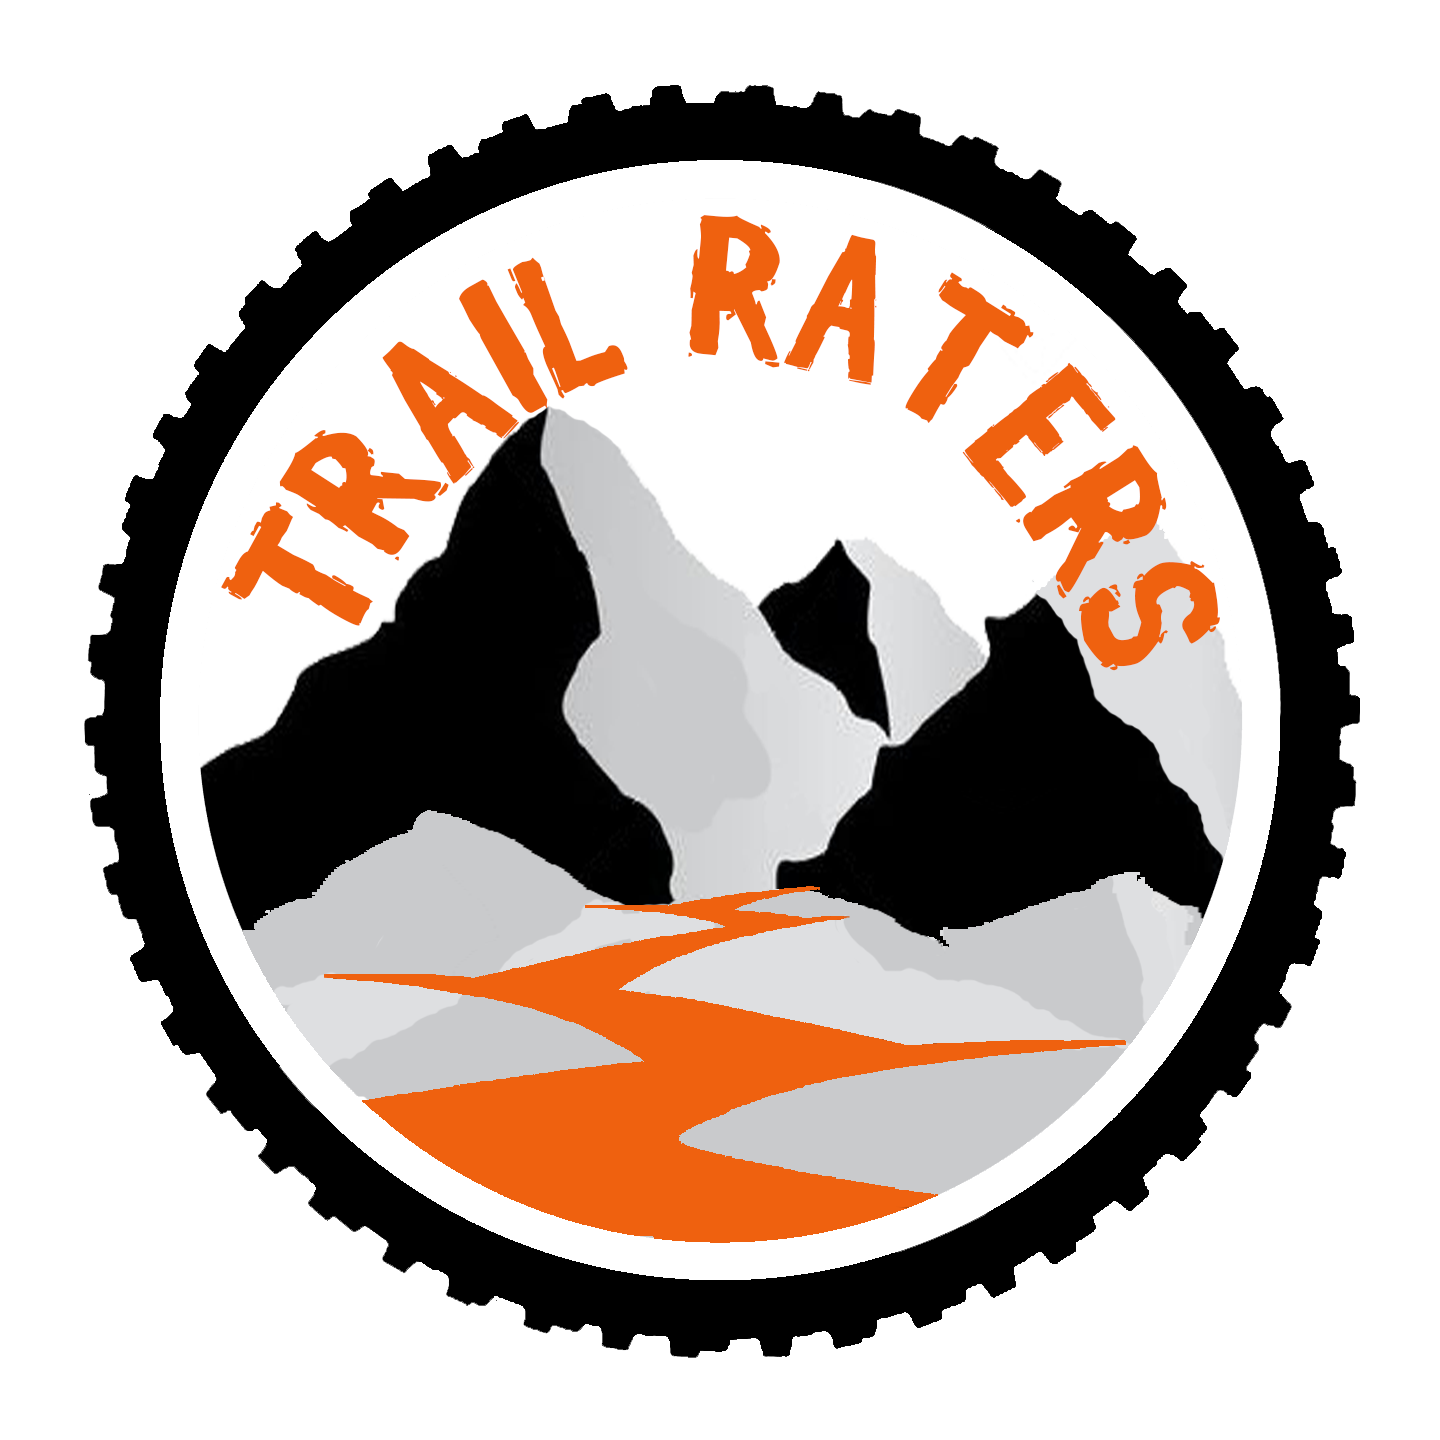 Trail Raters